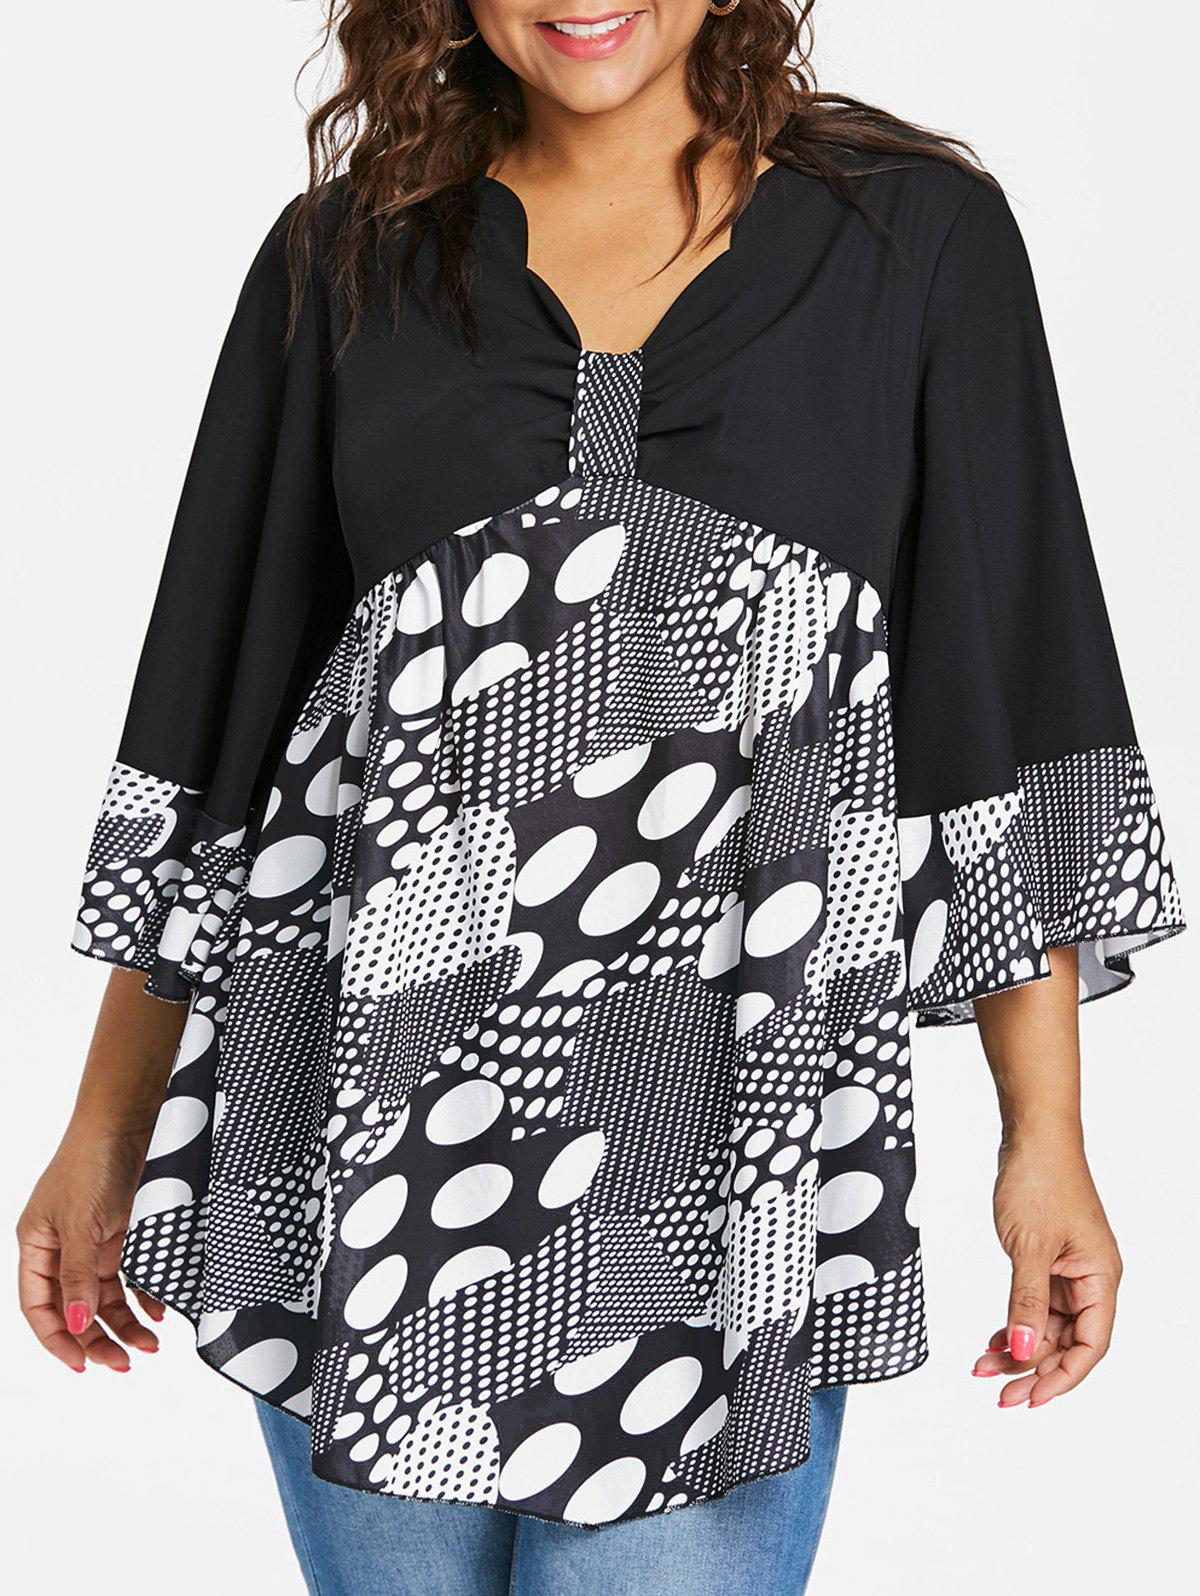 Chic Plus Size Bell Sleeve Polka Dot Blouse